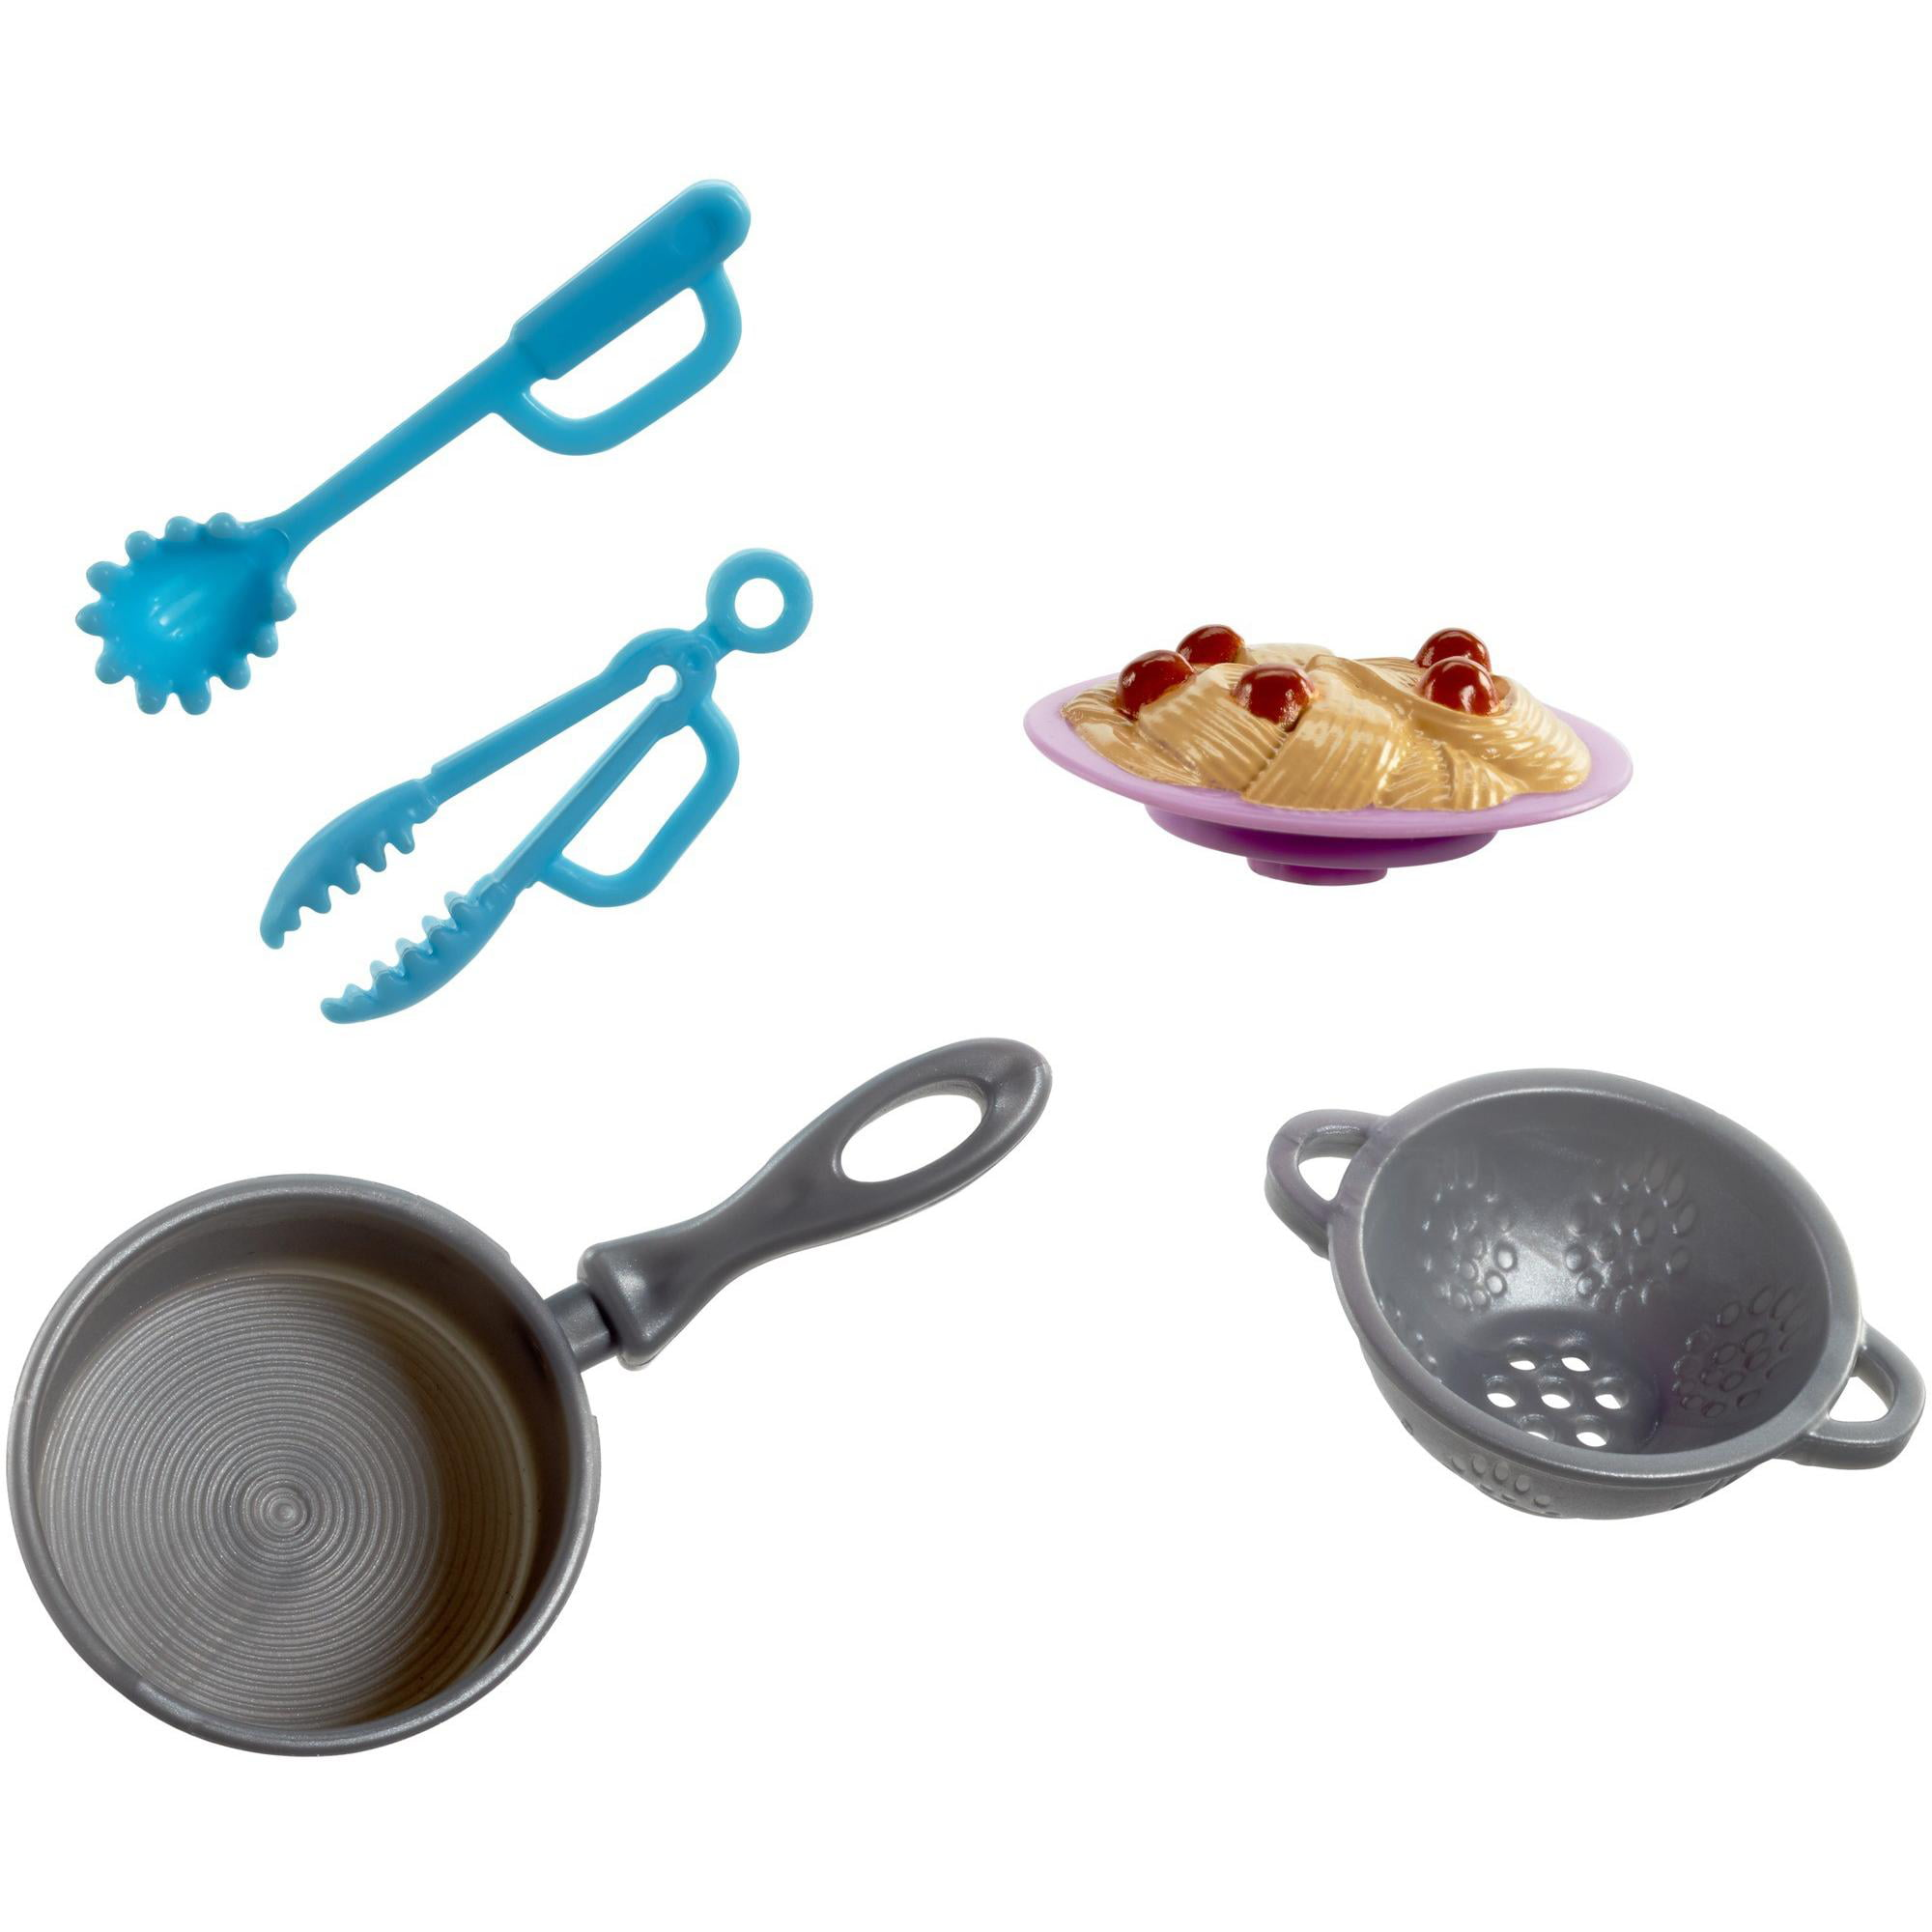 Barbie Cooking Baking Accessories NEW Set 4 Breakfast In Bed Spaghetti Cake Eggs